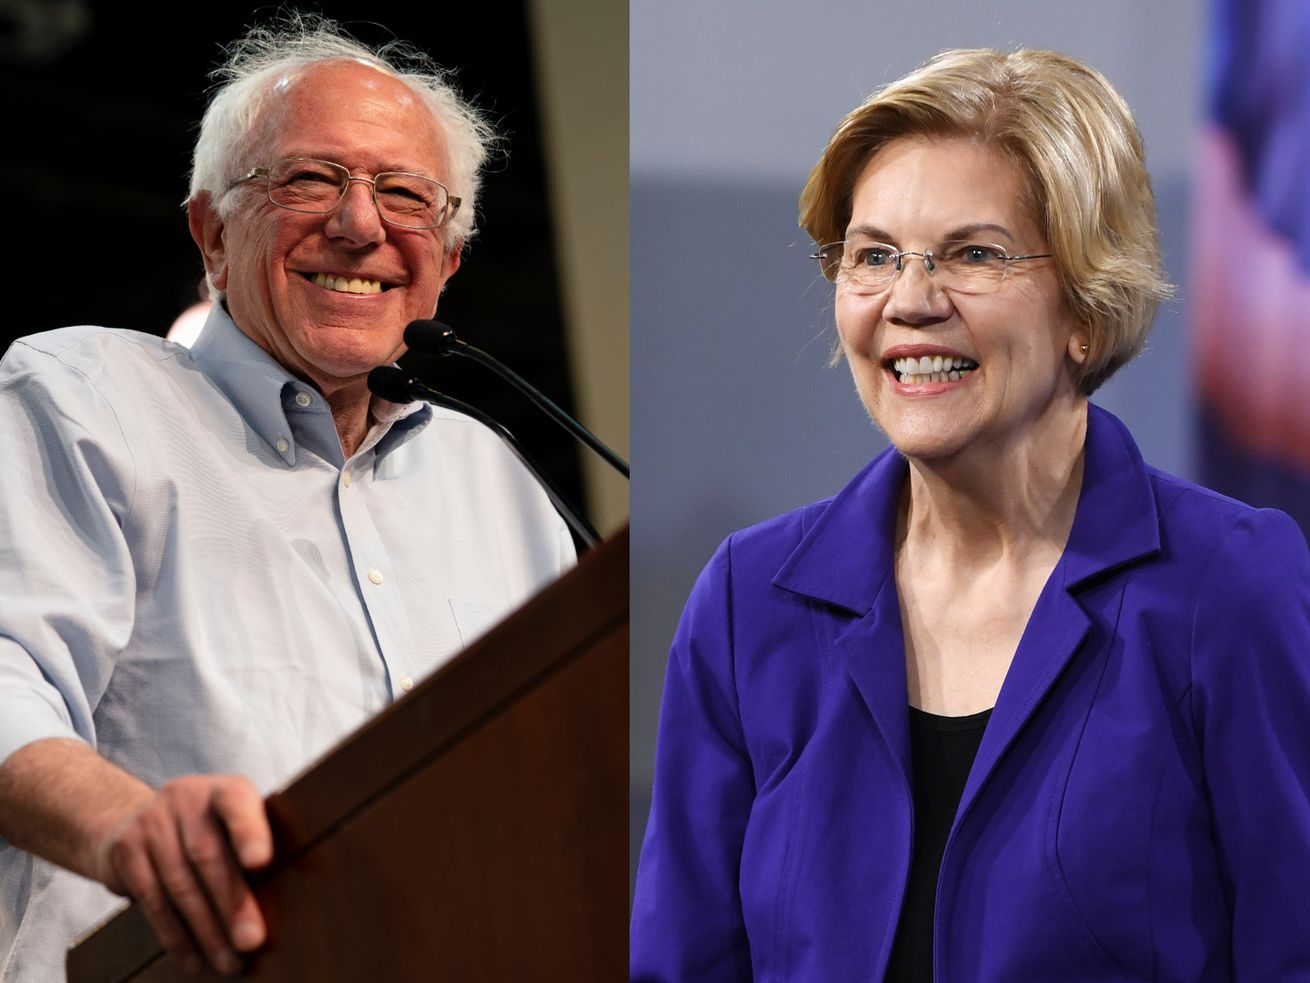 Bernie Sanders and Elizabeth Warren, friends in the Senate, and now competitors in the Democratic 2020 primary, are the two most progressive candidates in the field.